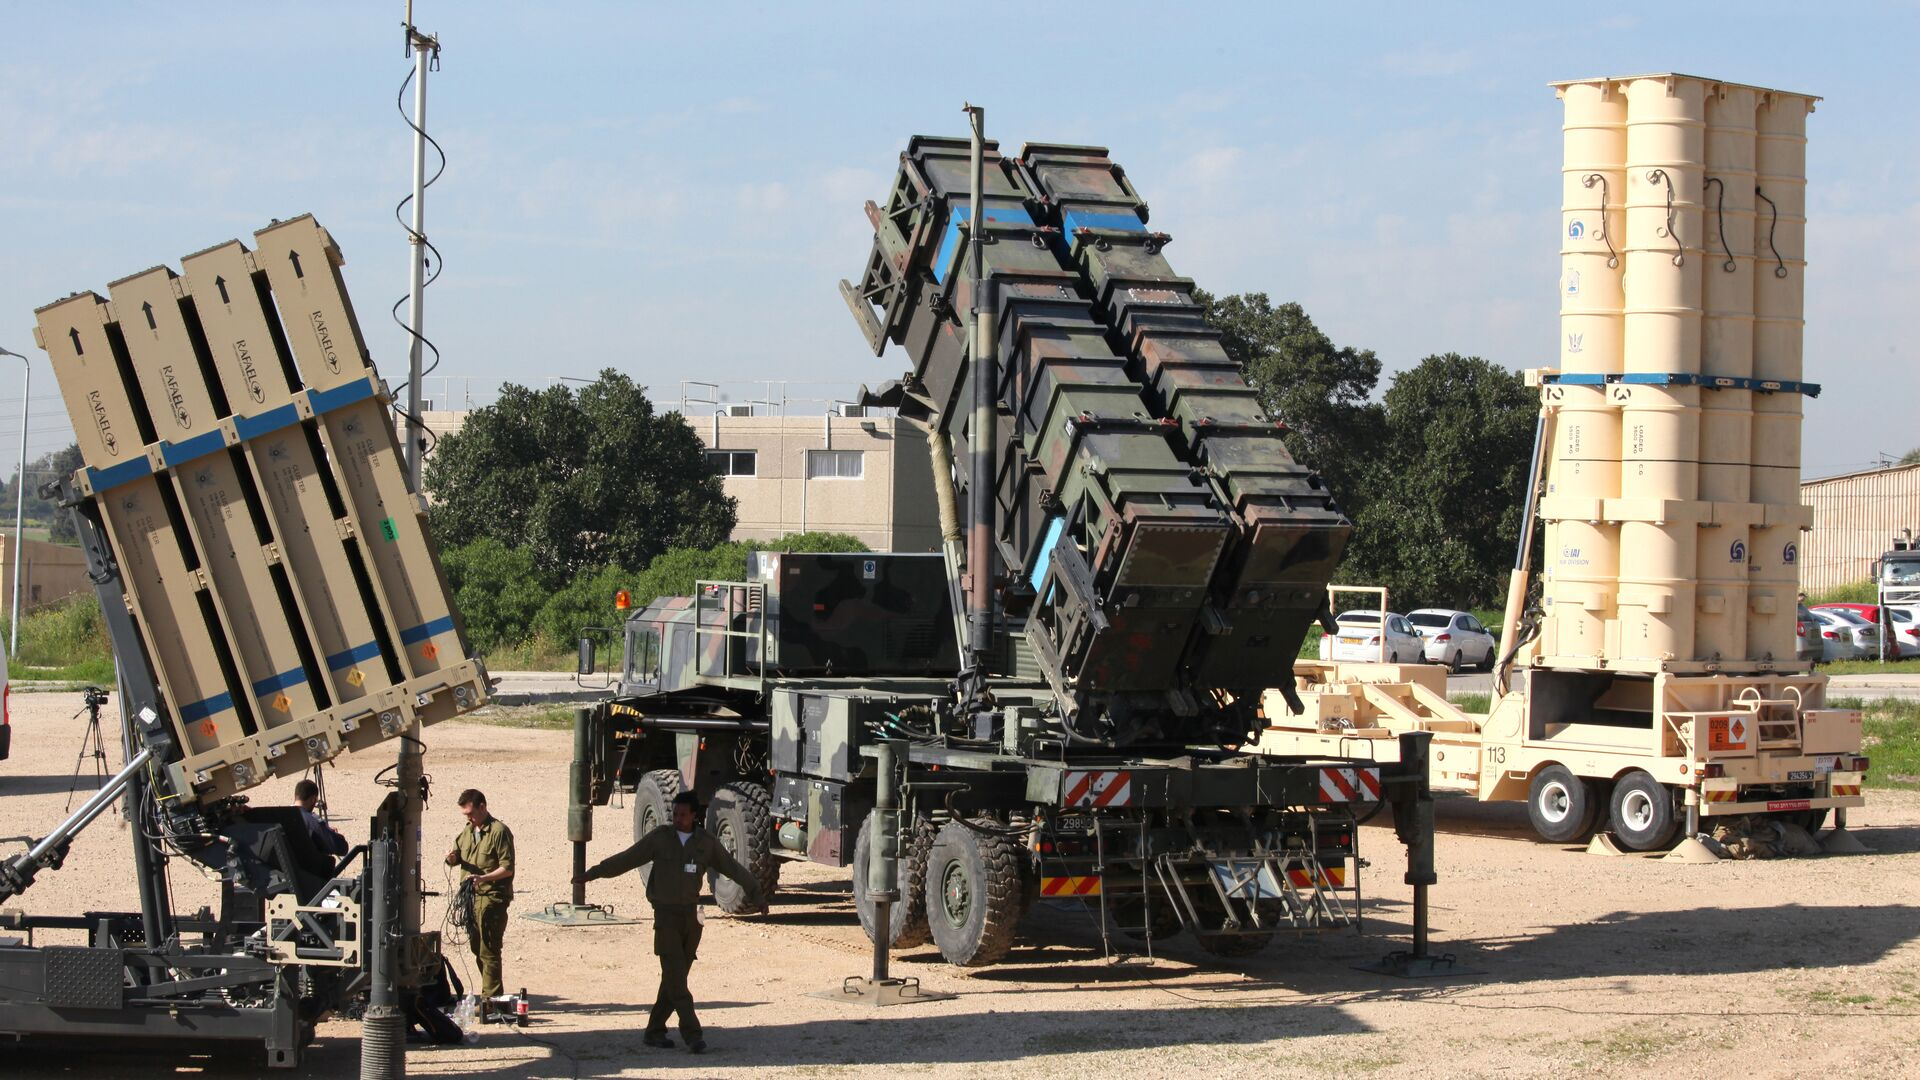 Israeli soldiers walk near an Israeli Irone Dome defence system (L), a surface-to-air missile (SAM) system, the MIM-104 Patriot (C), and an anti-ballistic missile the Arrow 3 (R) during Juniper Cobra's joint exercise press briefing at Hatzor Israeli Air Force Base in central Israel, on February 25, 2016. Juniper Cobra, is held every two years where Israel and the United States train their militaries together to prepare against possible ballistic missile attacks, as well as allowing the armies to learn to better work together. - Sputnik International, 1920, 27.09.2021